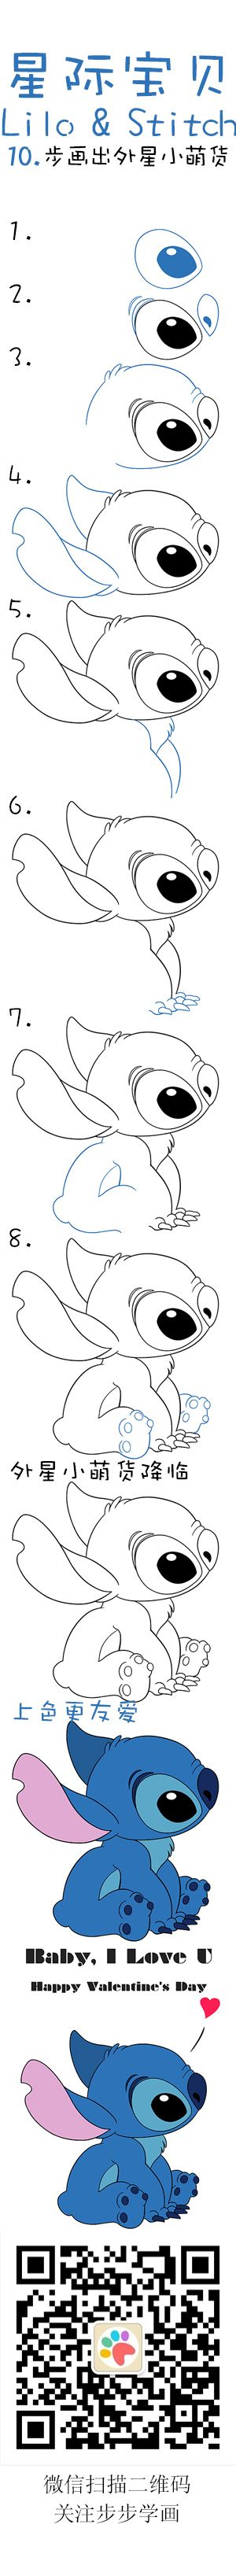 Learn how to draw Stitch Personalmente AMO a Stitch...es la cosita mas kawaii en este mundo